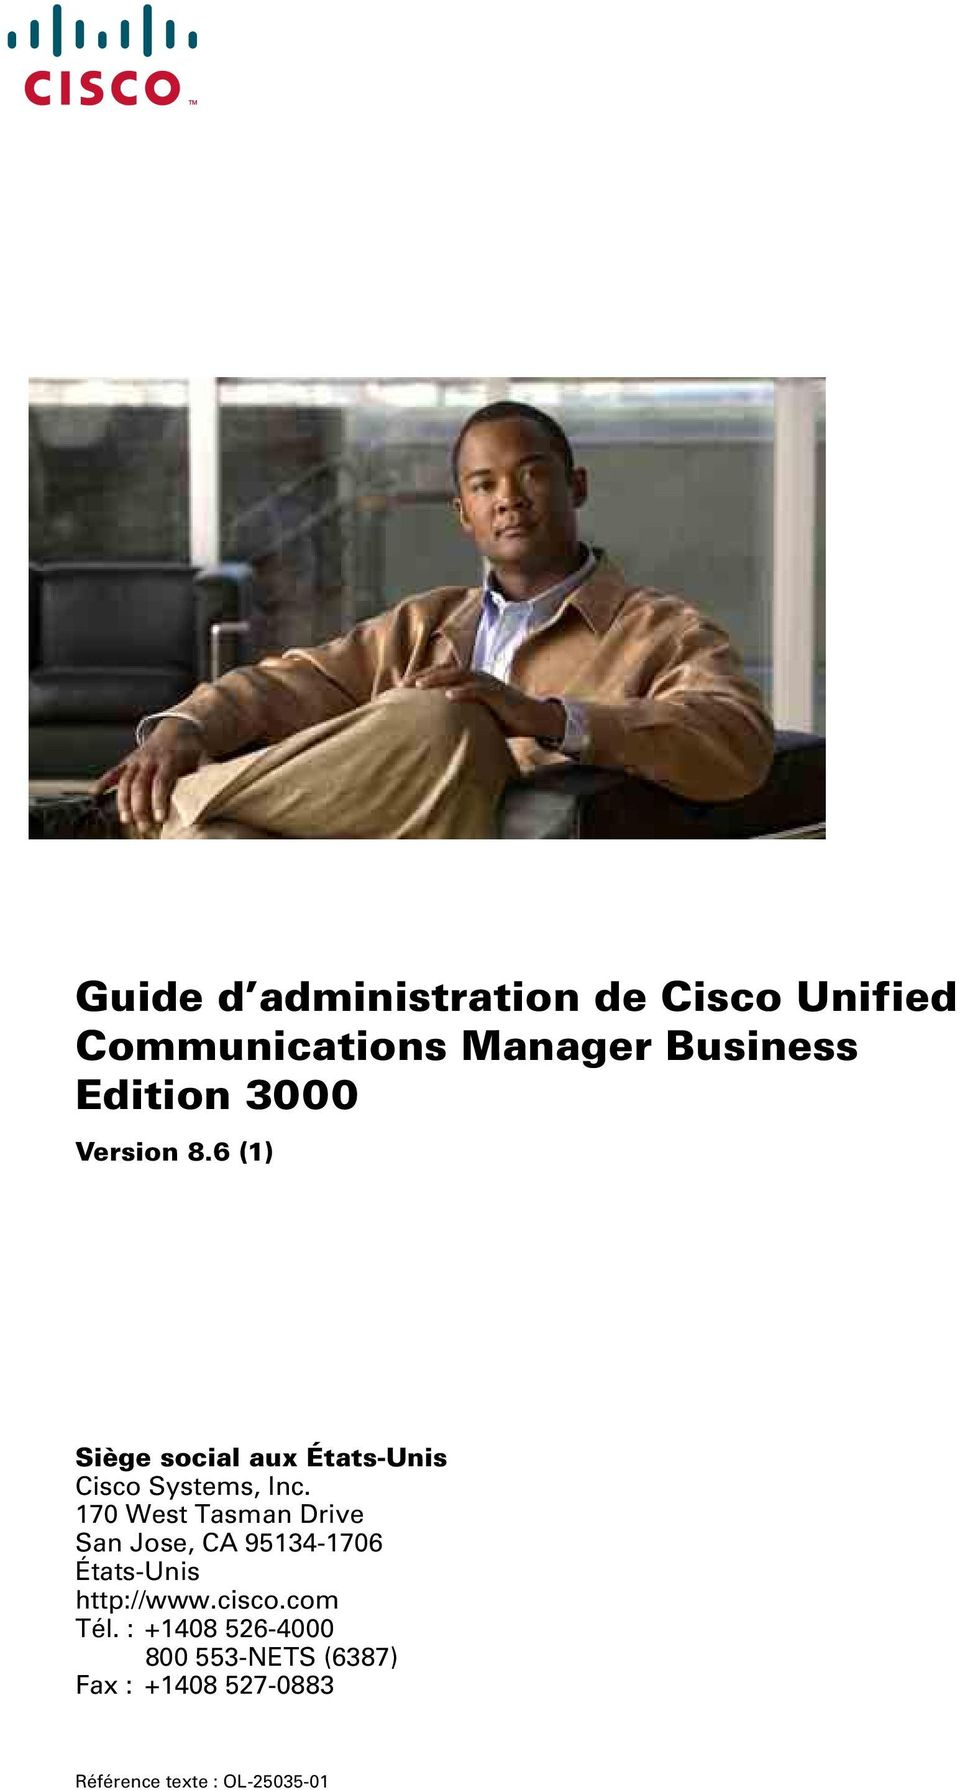 170 West Tasman Drive San Jose, CA 95134-1706 États-Unis http://www.cisco.